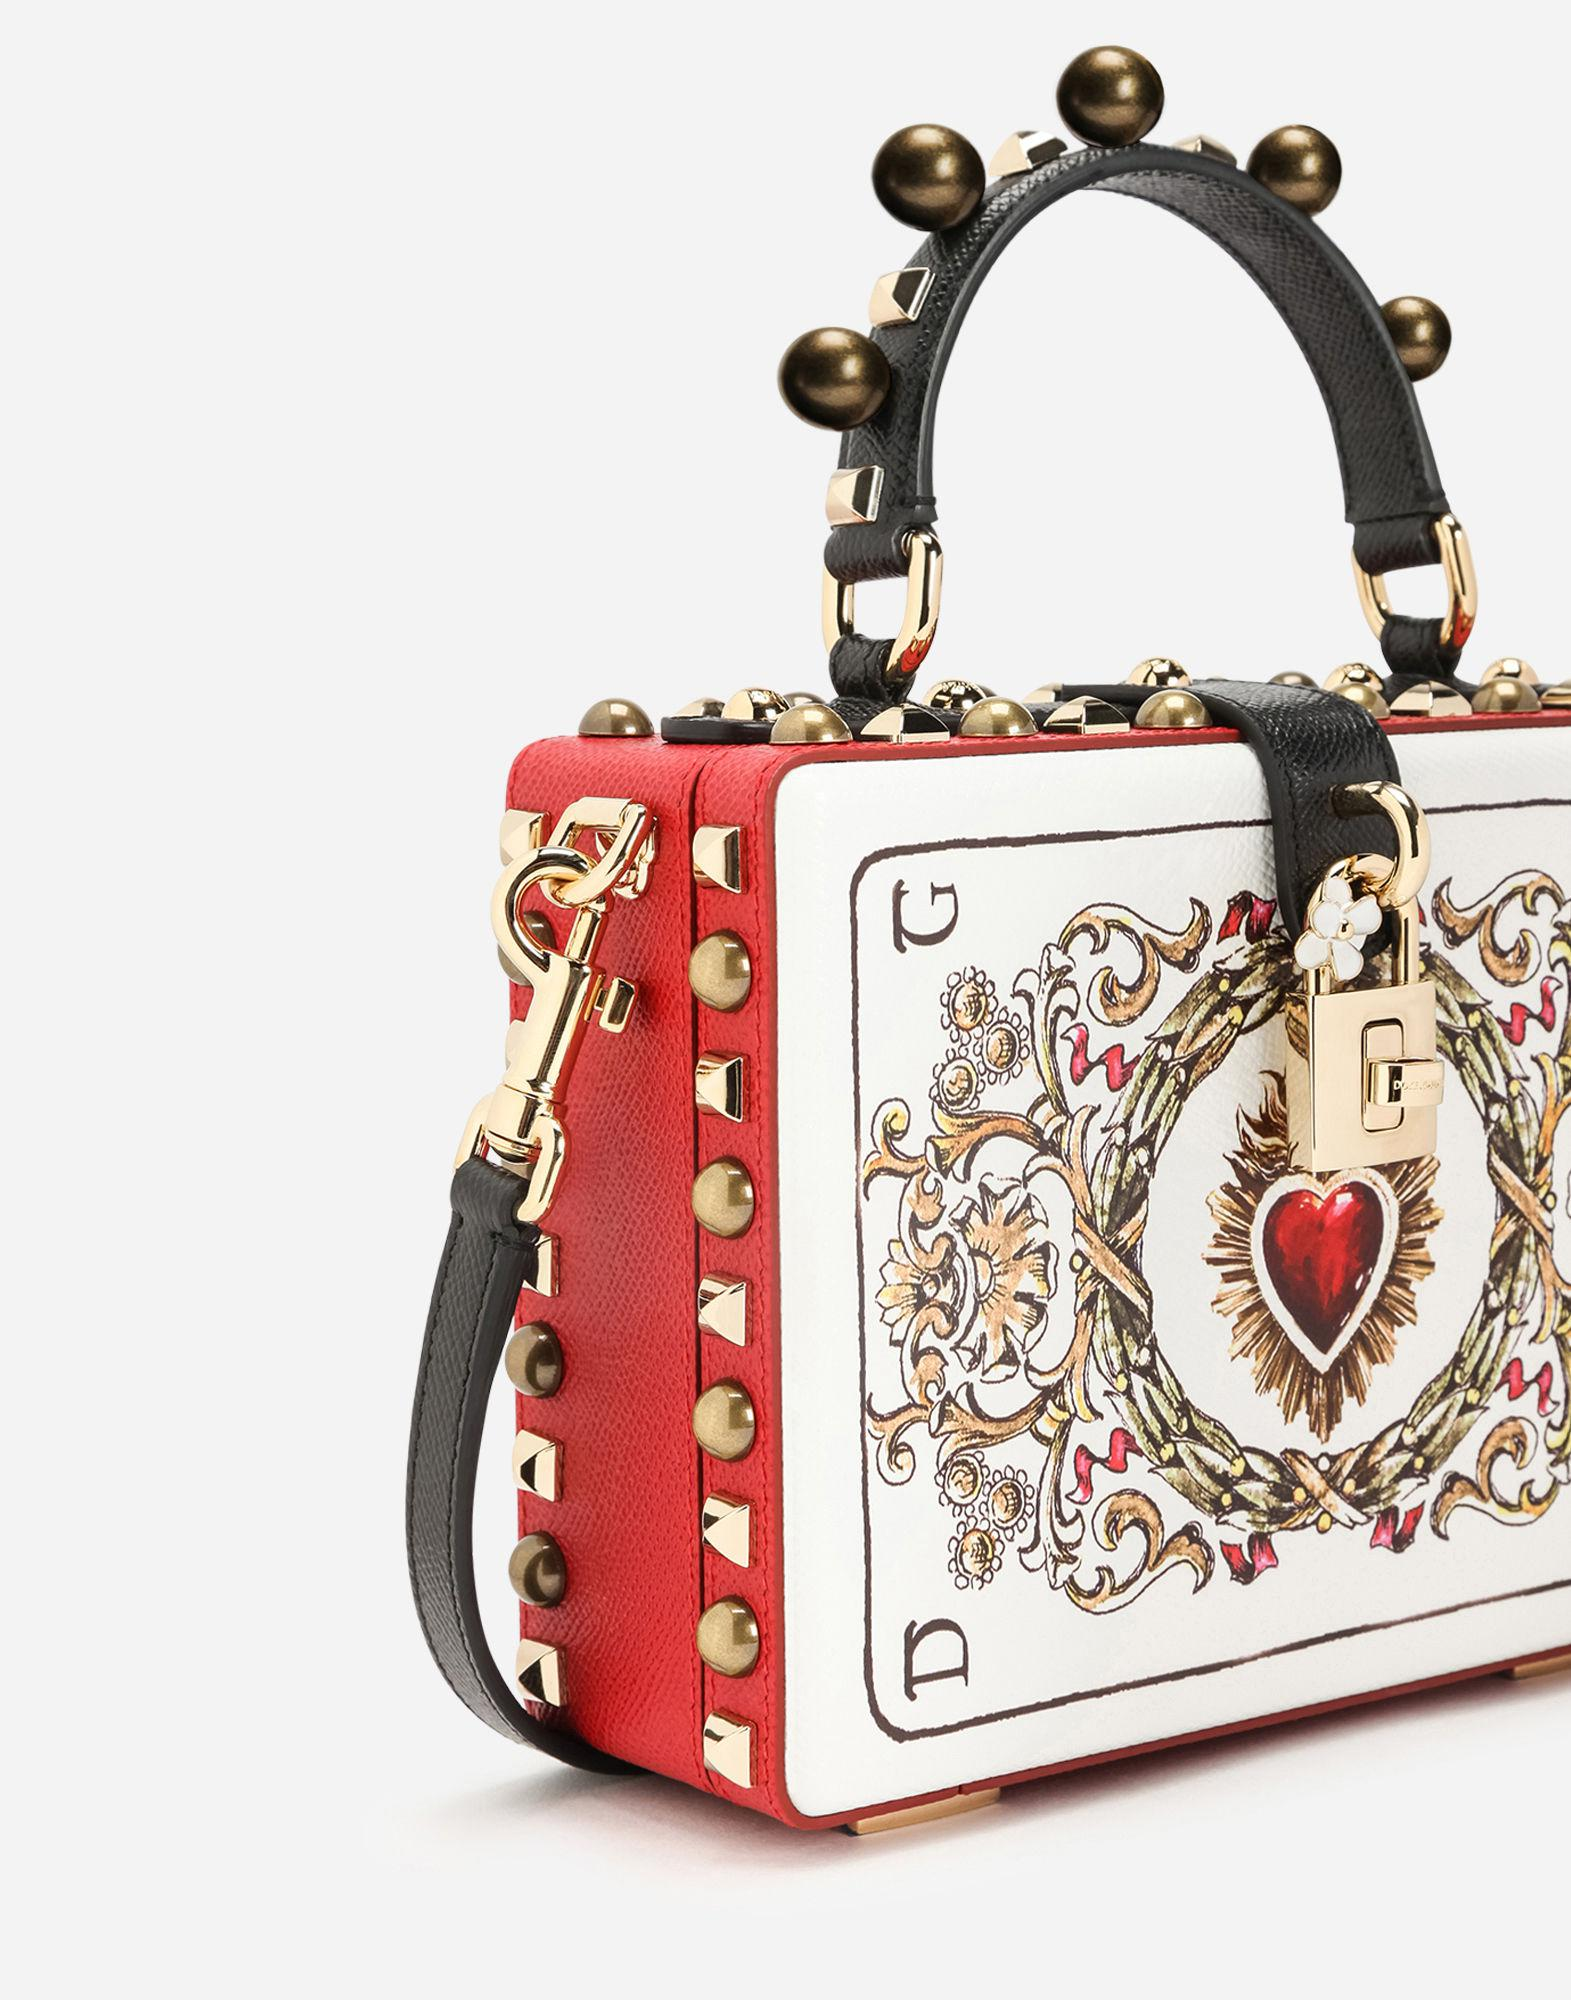 91d46ac6b3 Dolce & Gabbana Dolce Box Bag In Printed Dauphine Calfskin With ...